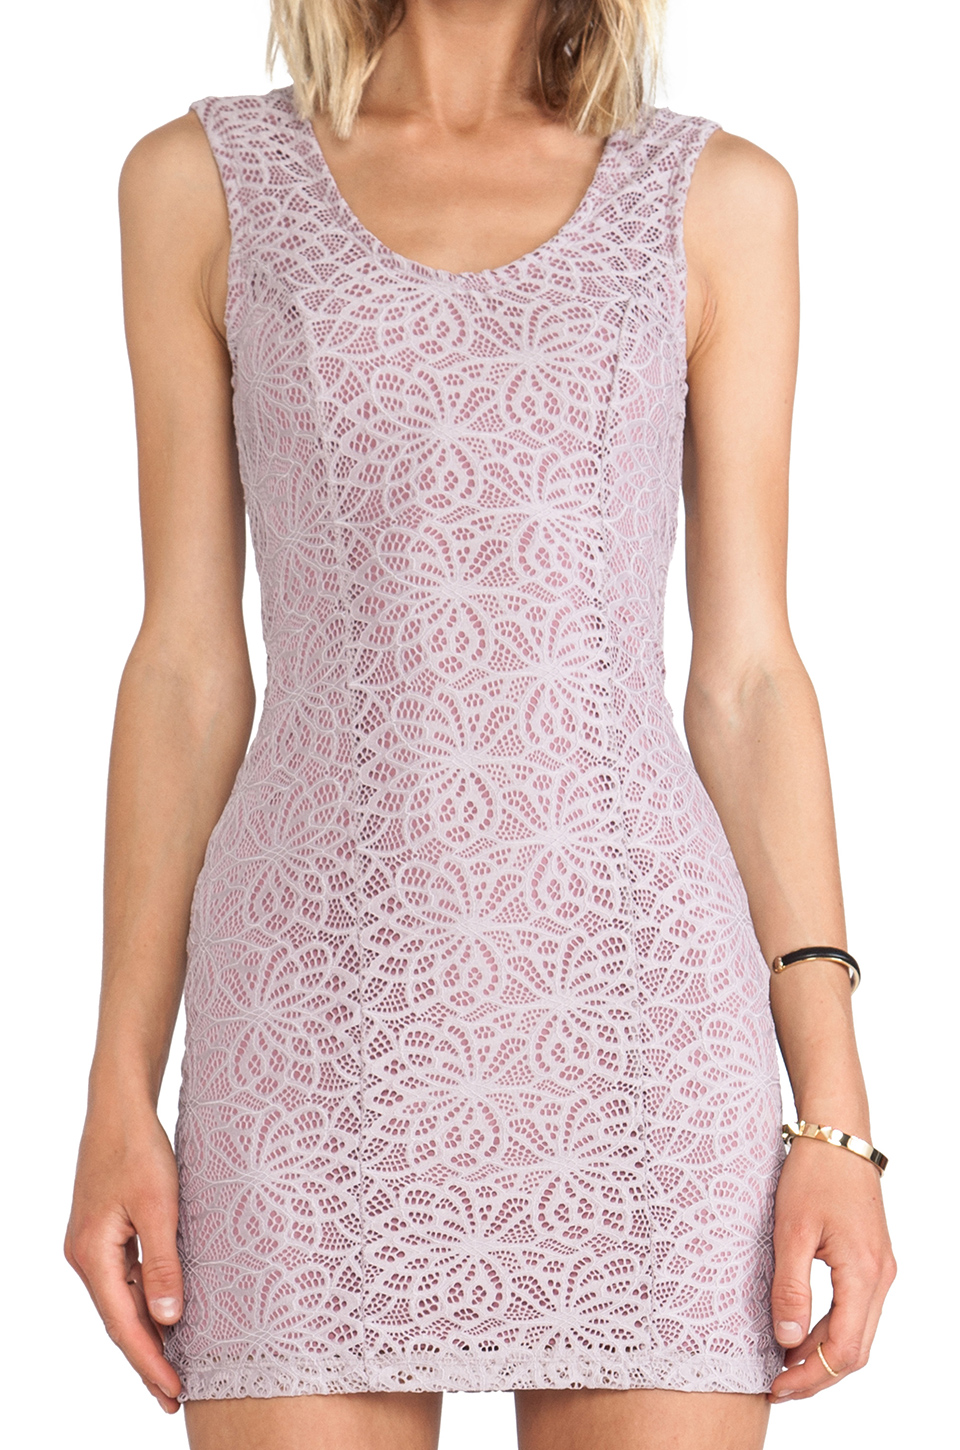 Lovers + Friends Lovers + Friends Au Natural Dress in Lavender Lace